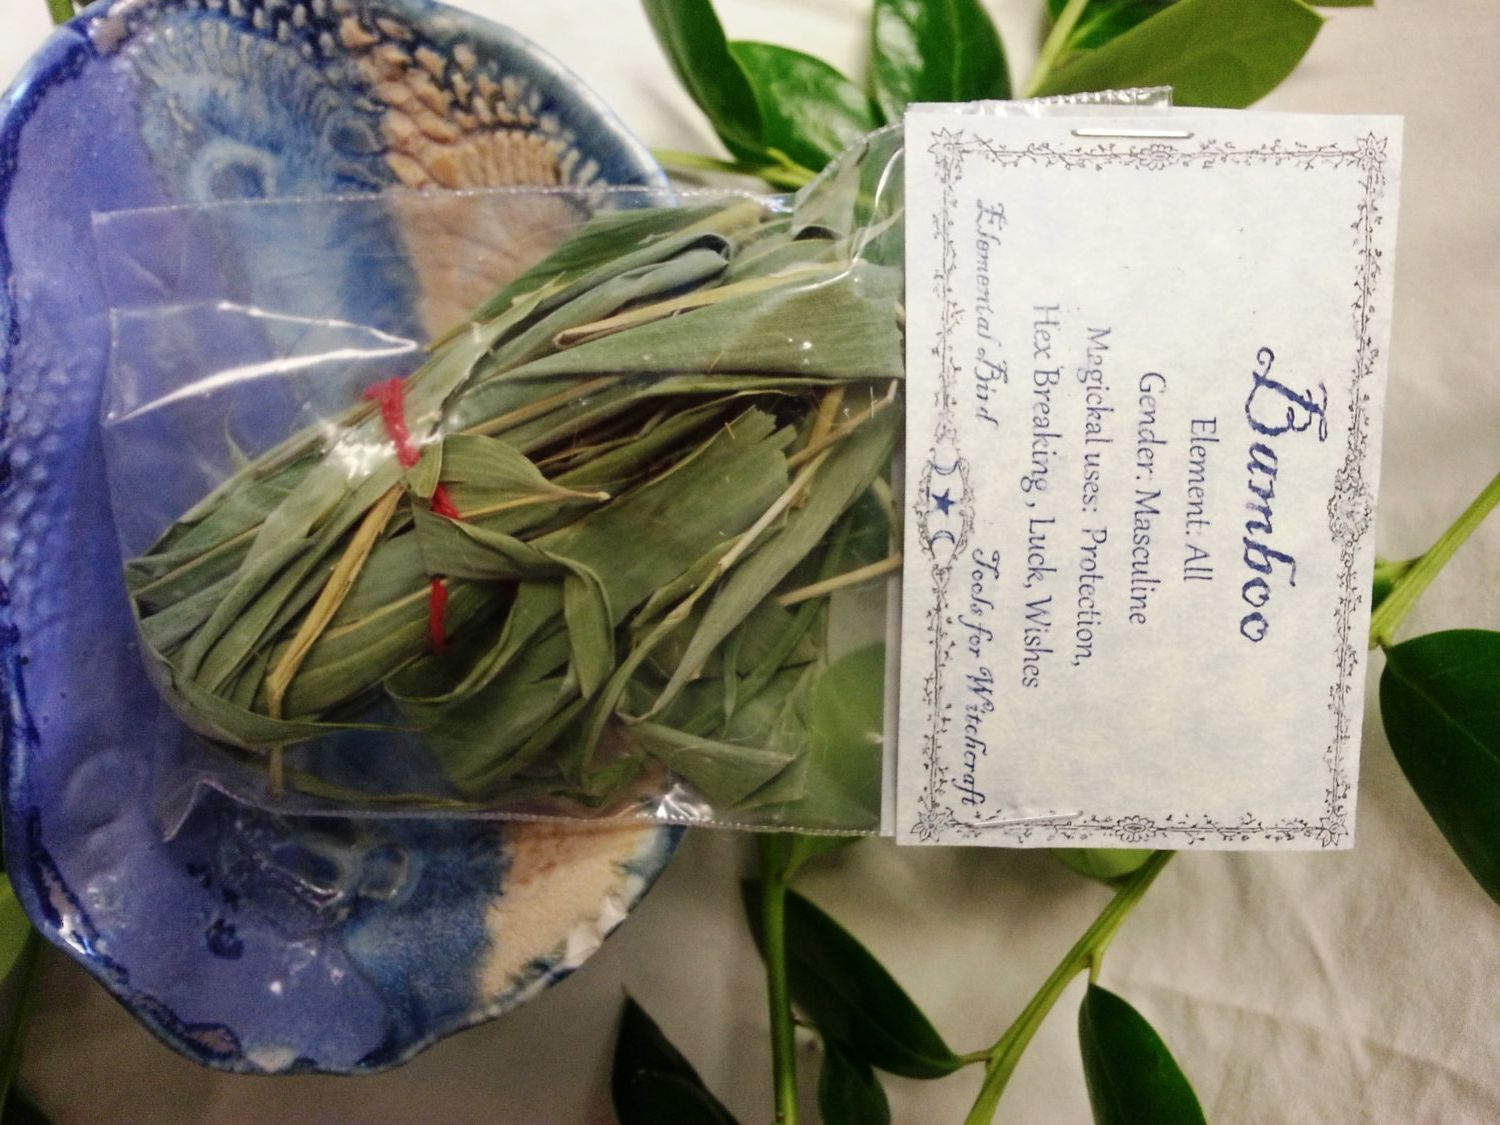 Dried Bamboo Leaves magick , Wicca, Greenwitch, Witchcraft, Hedge